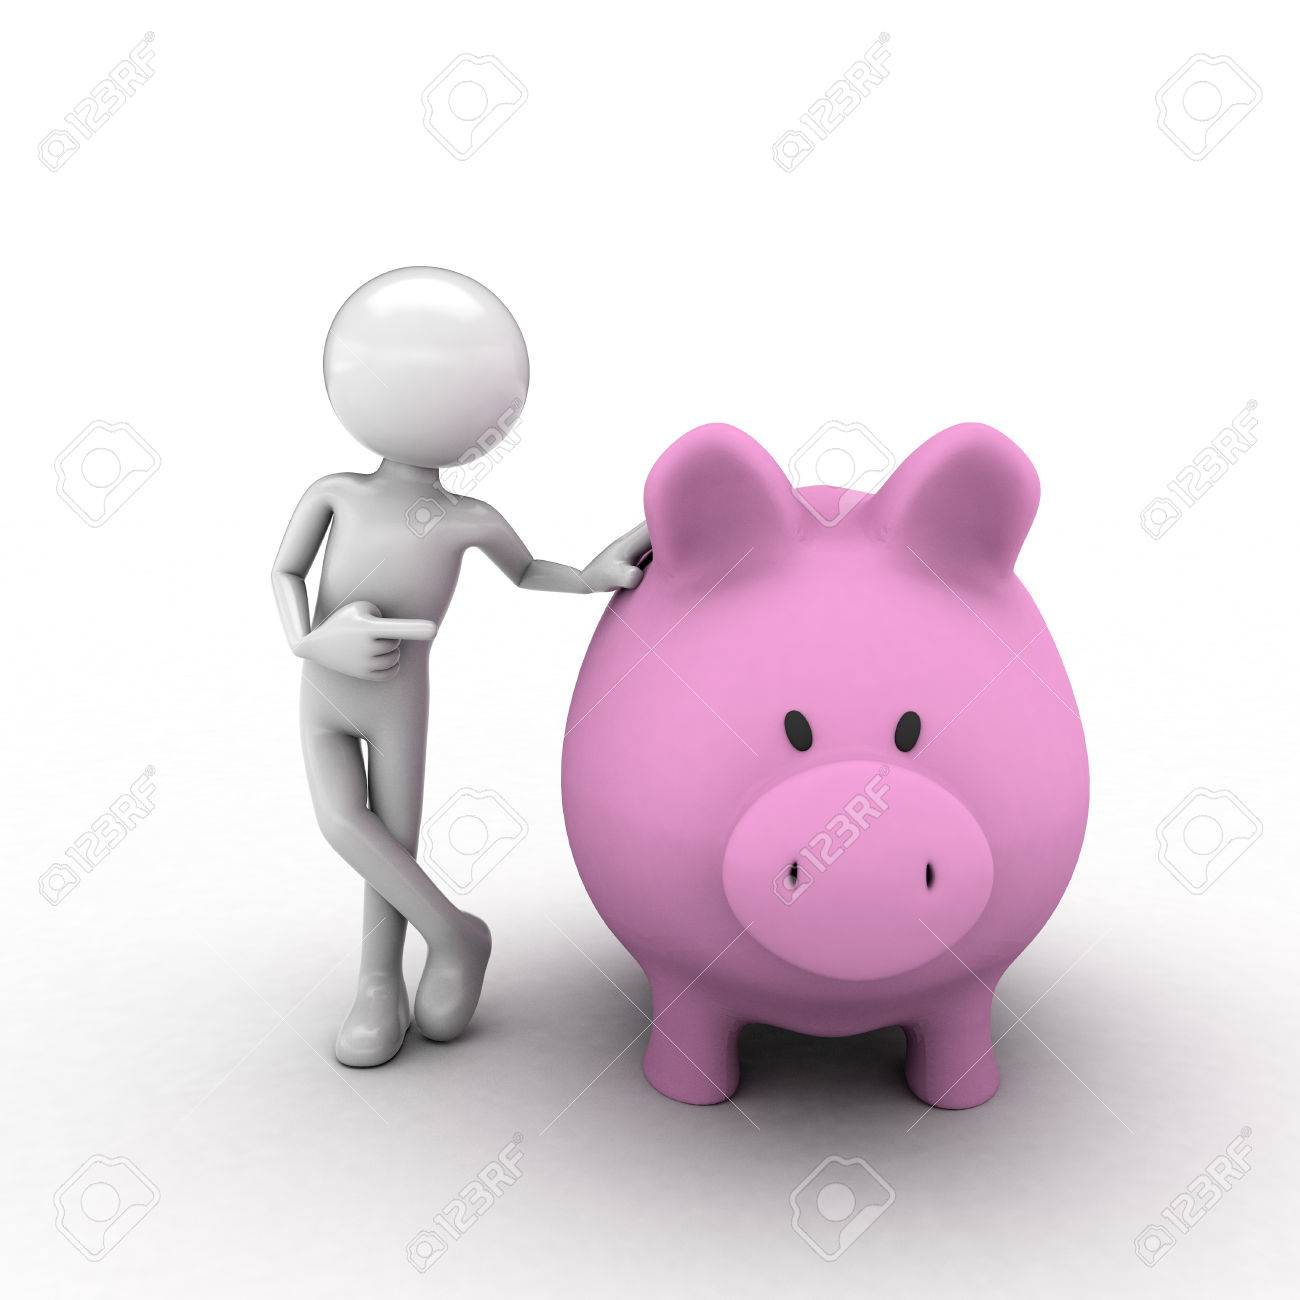 also with an audio visual piggy bank teller economy Stock Photo - 62468930